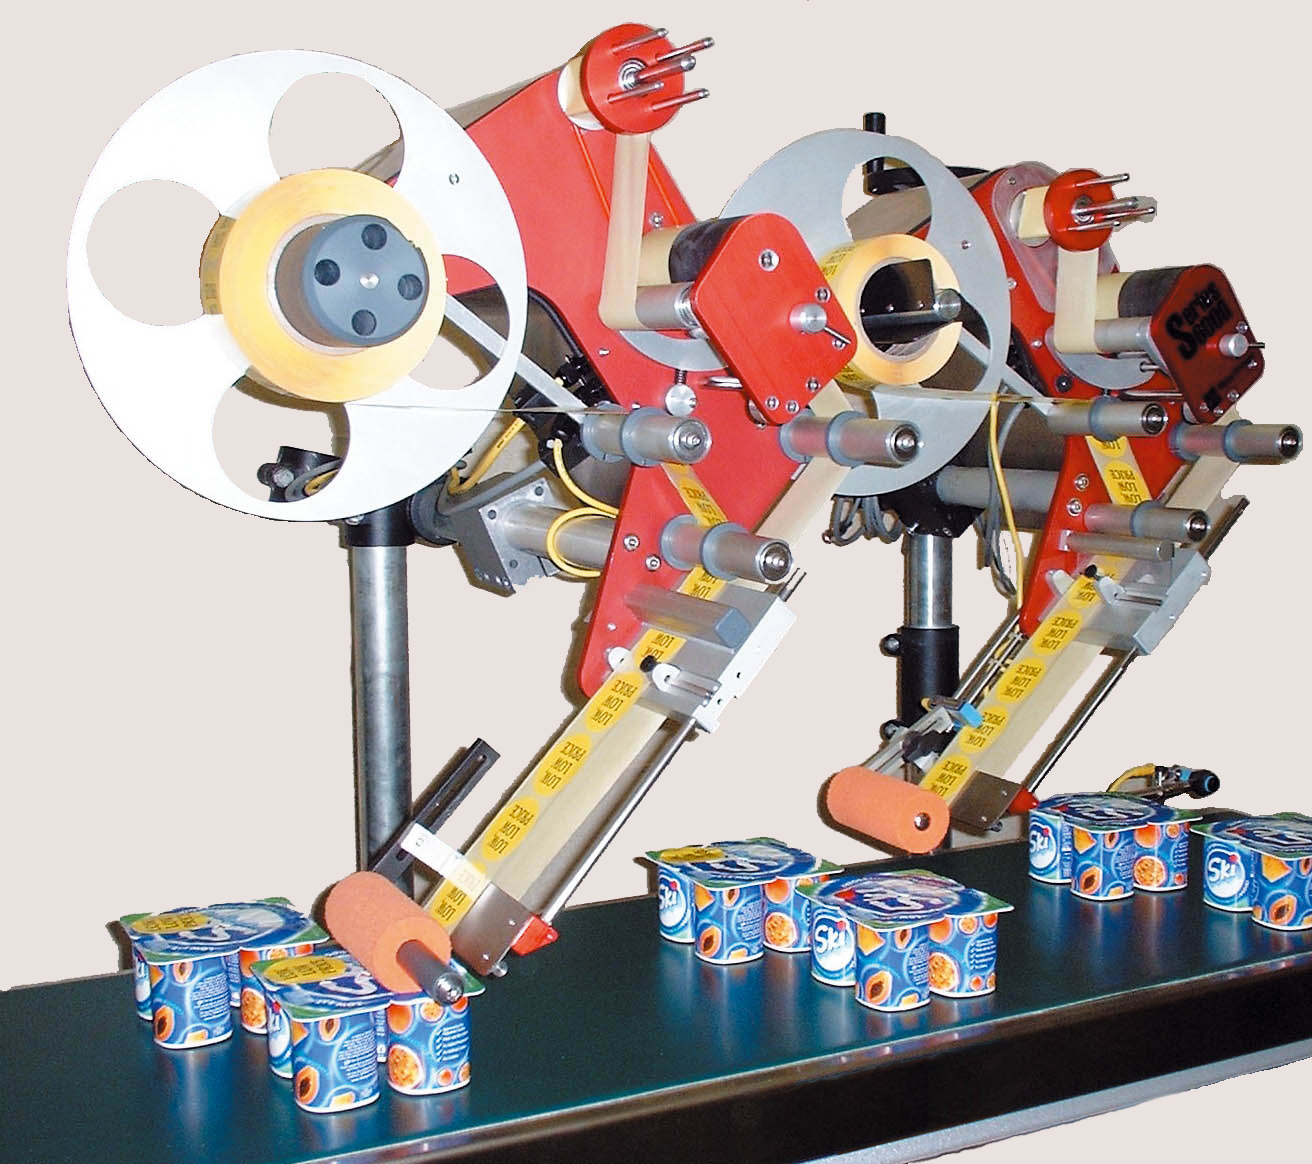 Label applicators for food packaging